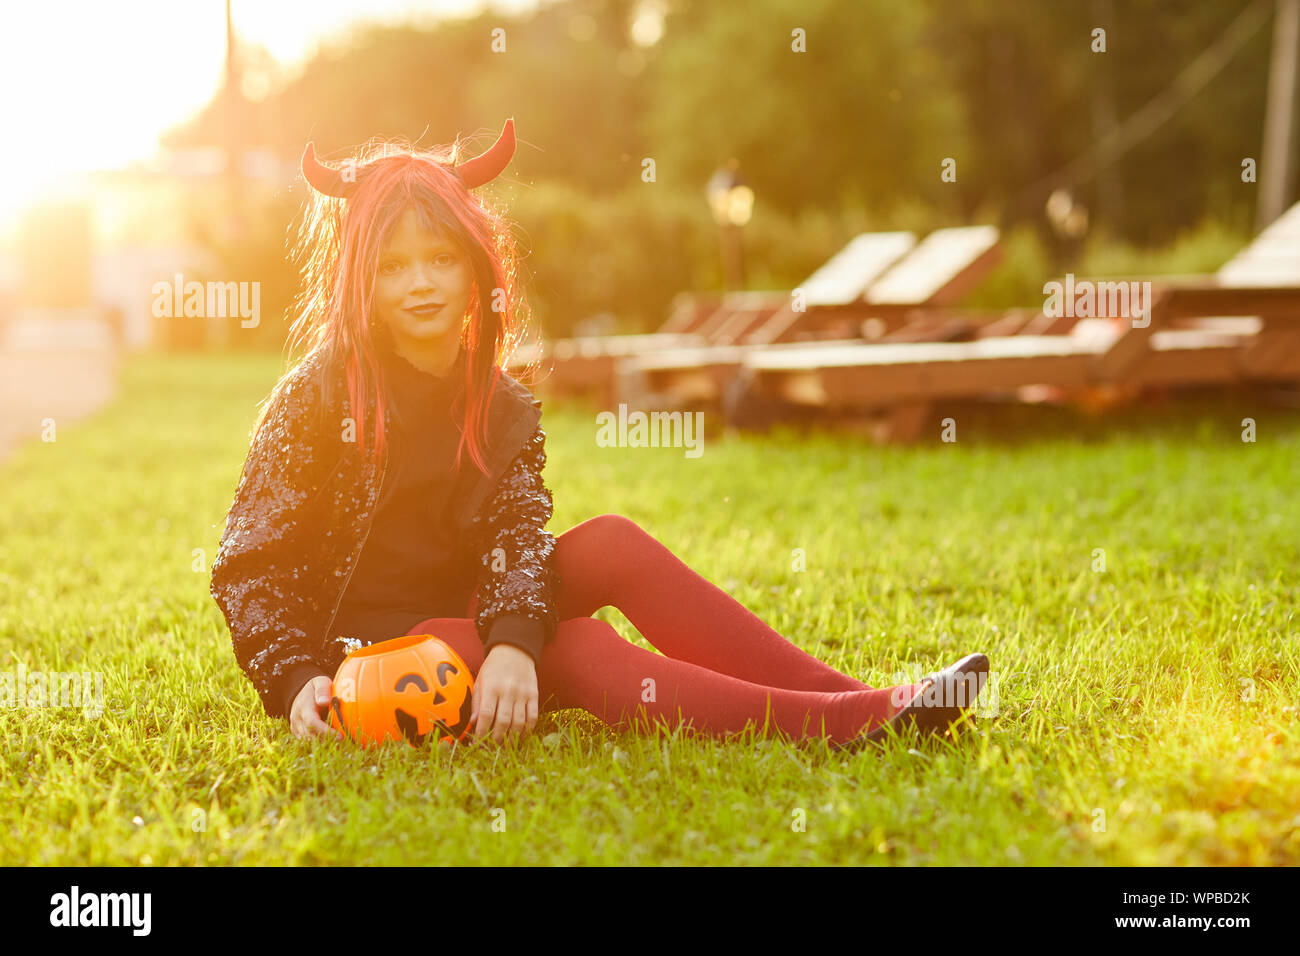 Full length portrait of cute little girl wearing Halloween costume sitting on green lawn with pumpkin basket and looking at camera, copy space Stock Photo